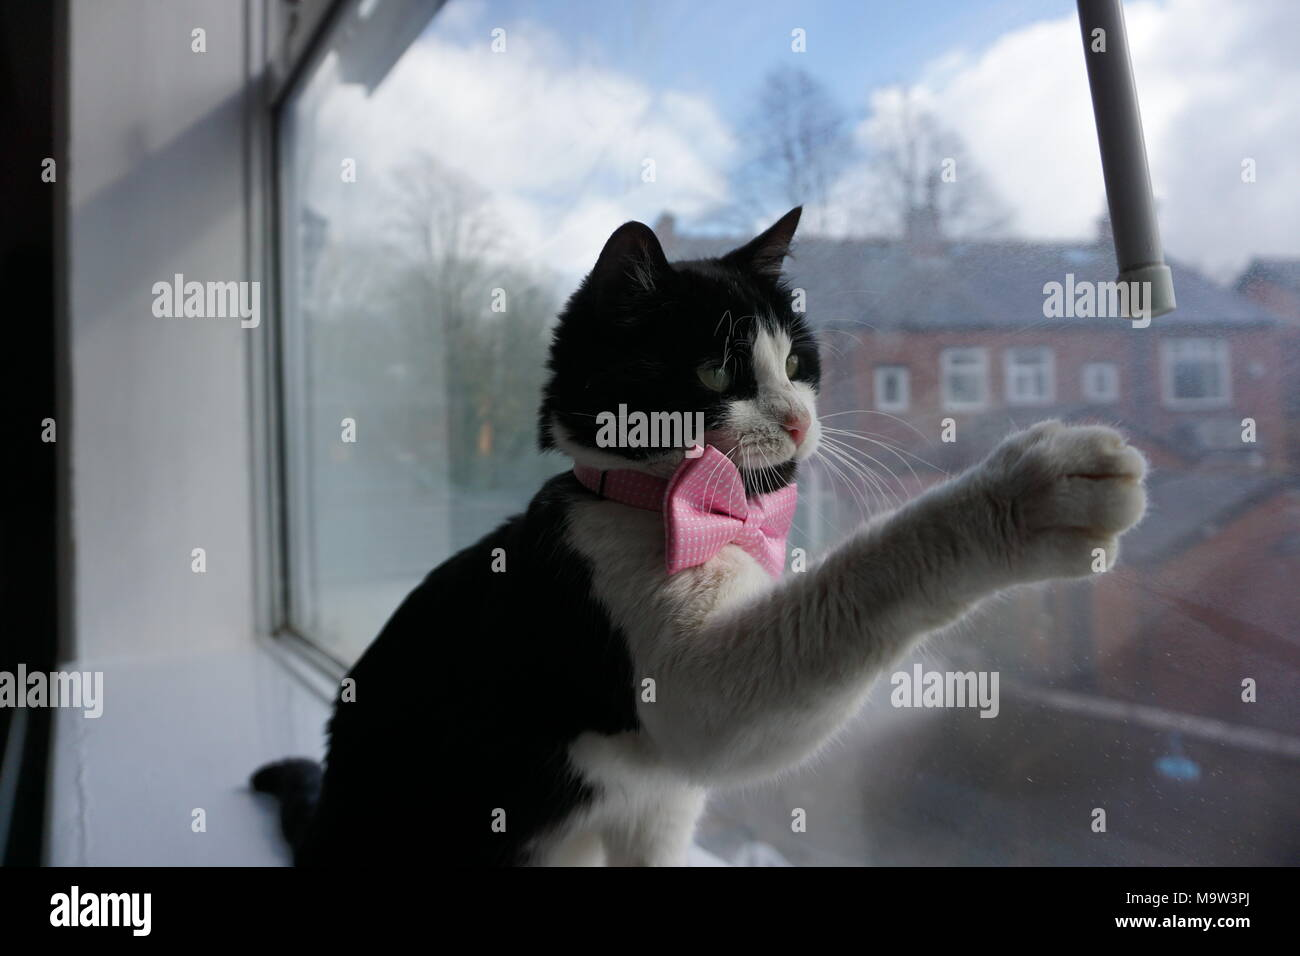 Black & White Cat Modelling Pink Bow Tie & Glasses - Stock Image